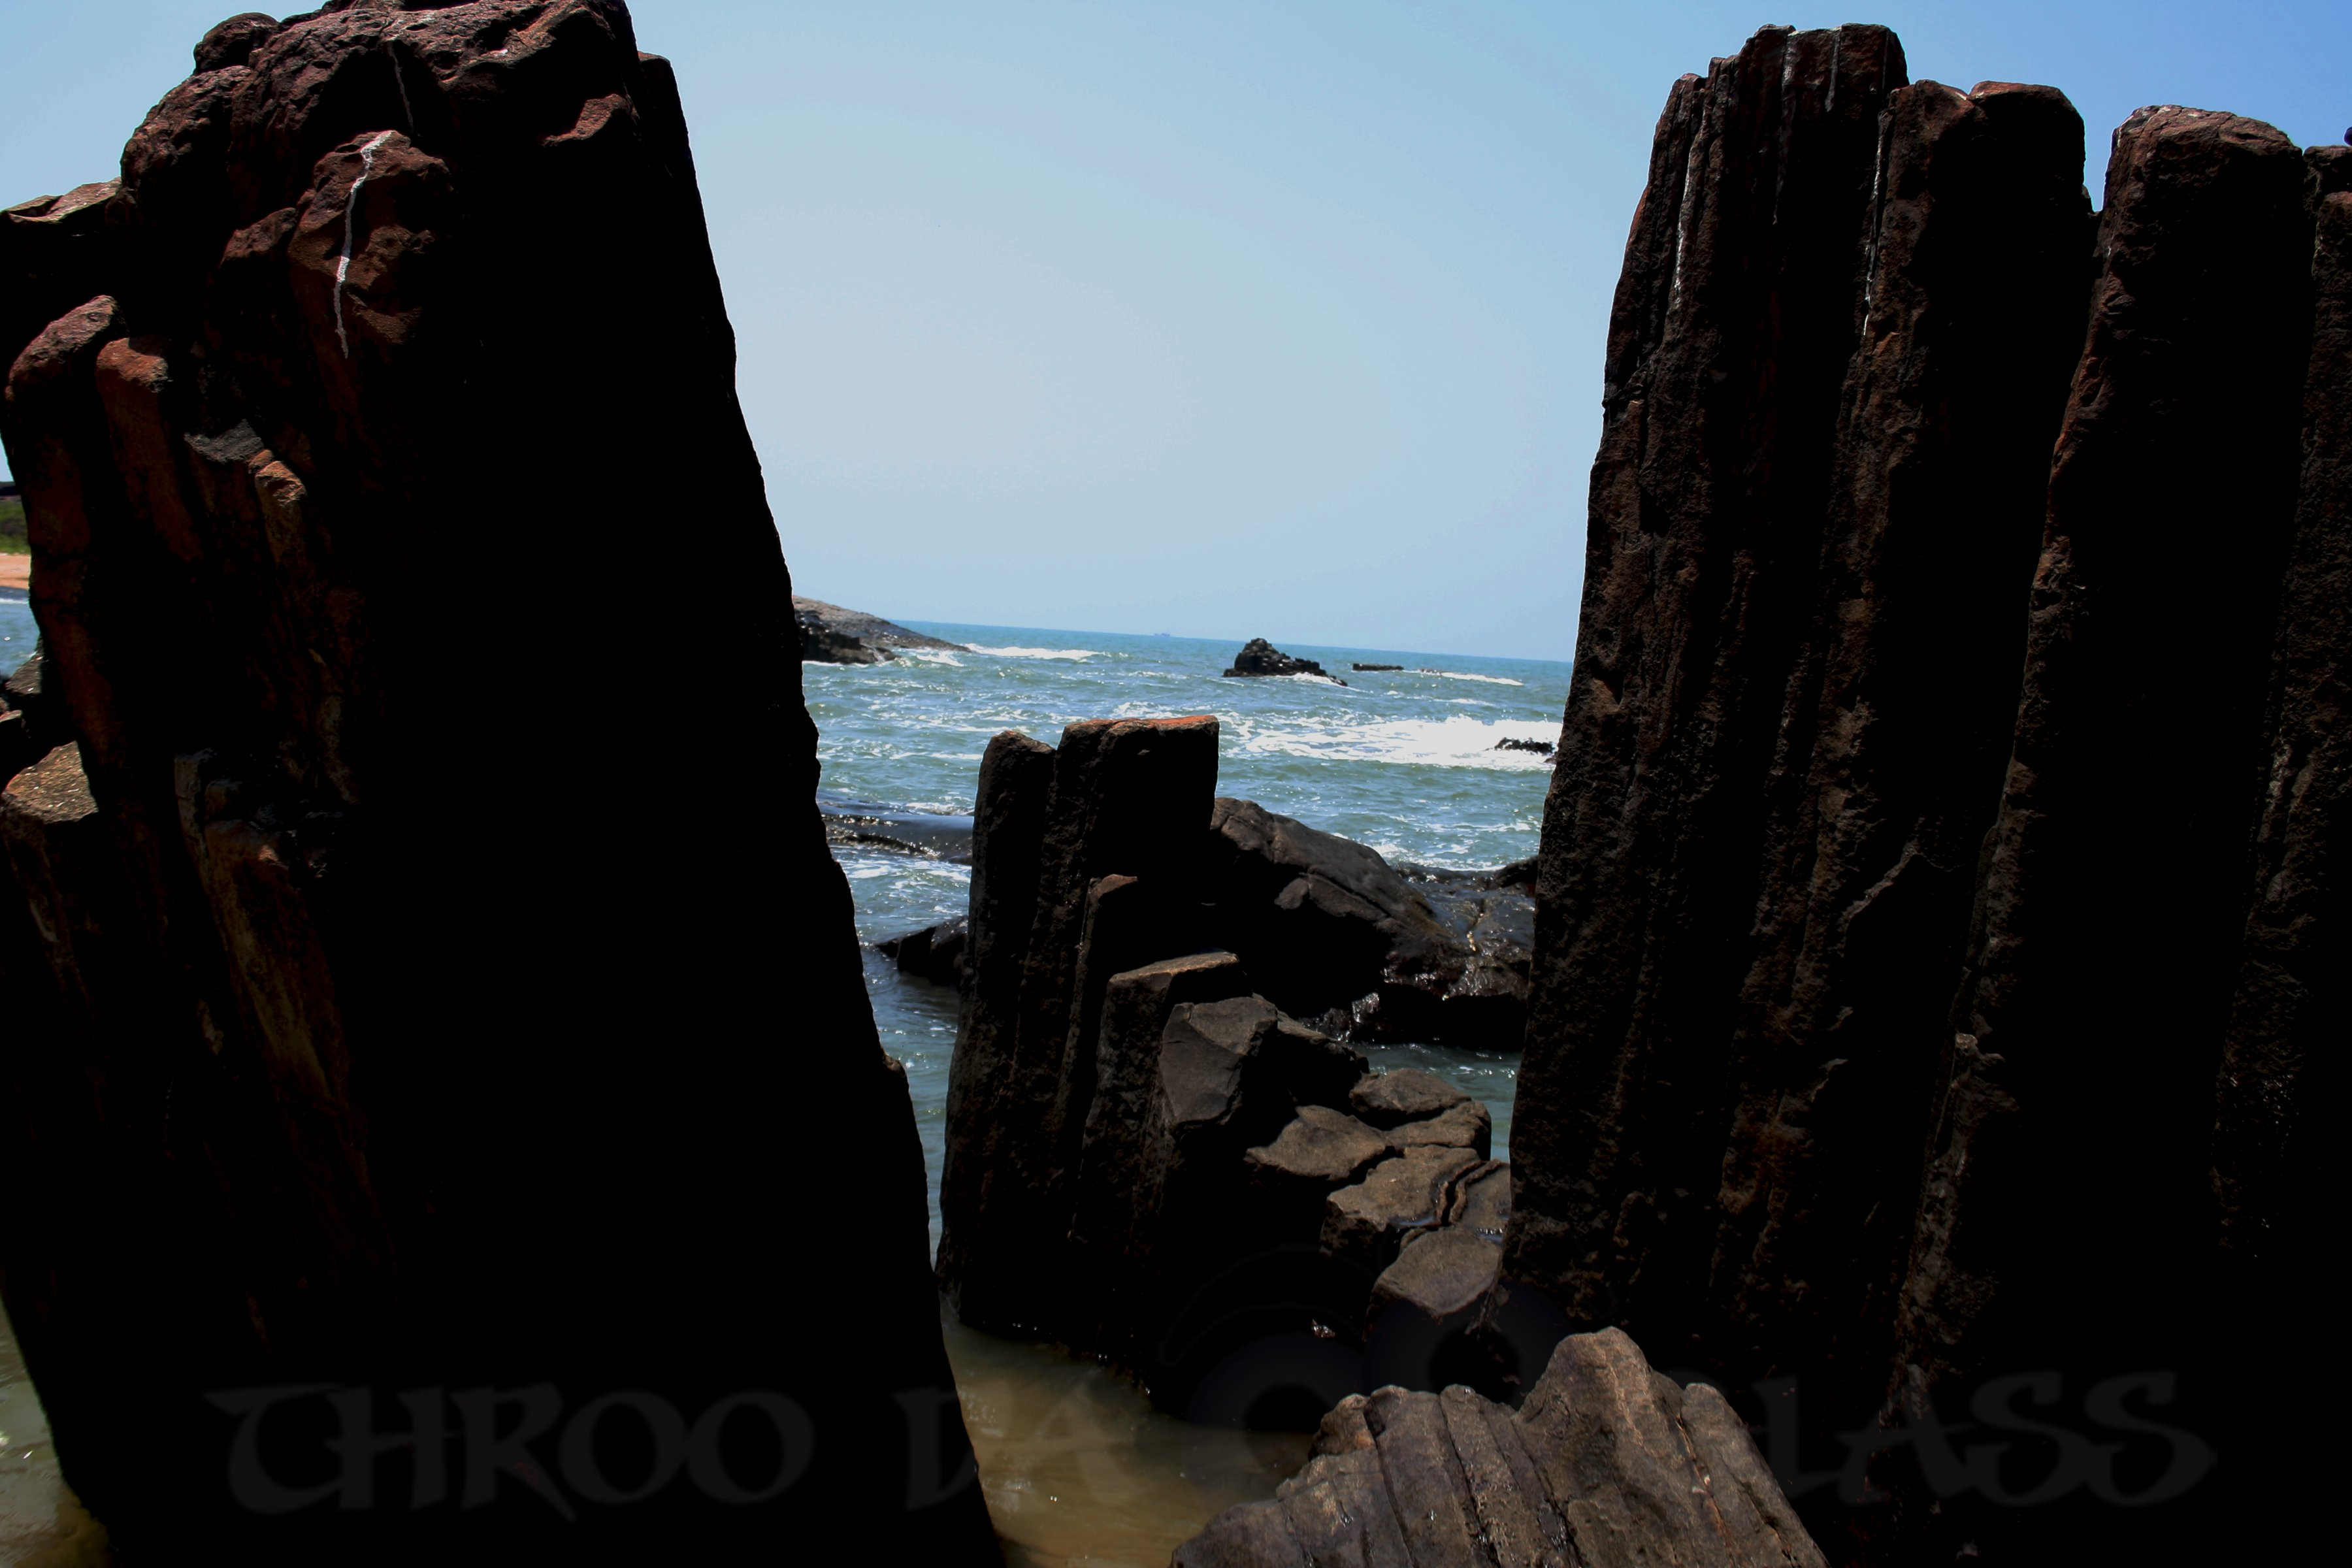 N,Natural Rock Formation,St Mary's Island,Udupi,a-z,challenge,abc wednesday,wordless,pravin,pm,phenomenon,pravs,throo da looking glass,bangalore blog